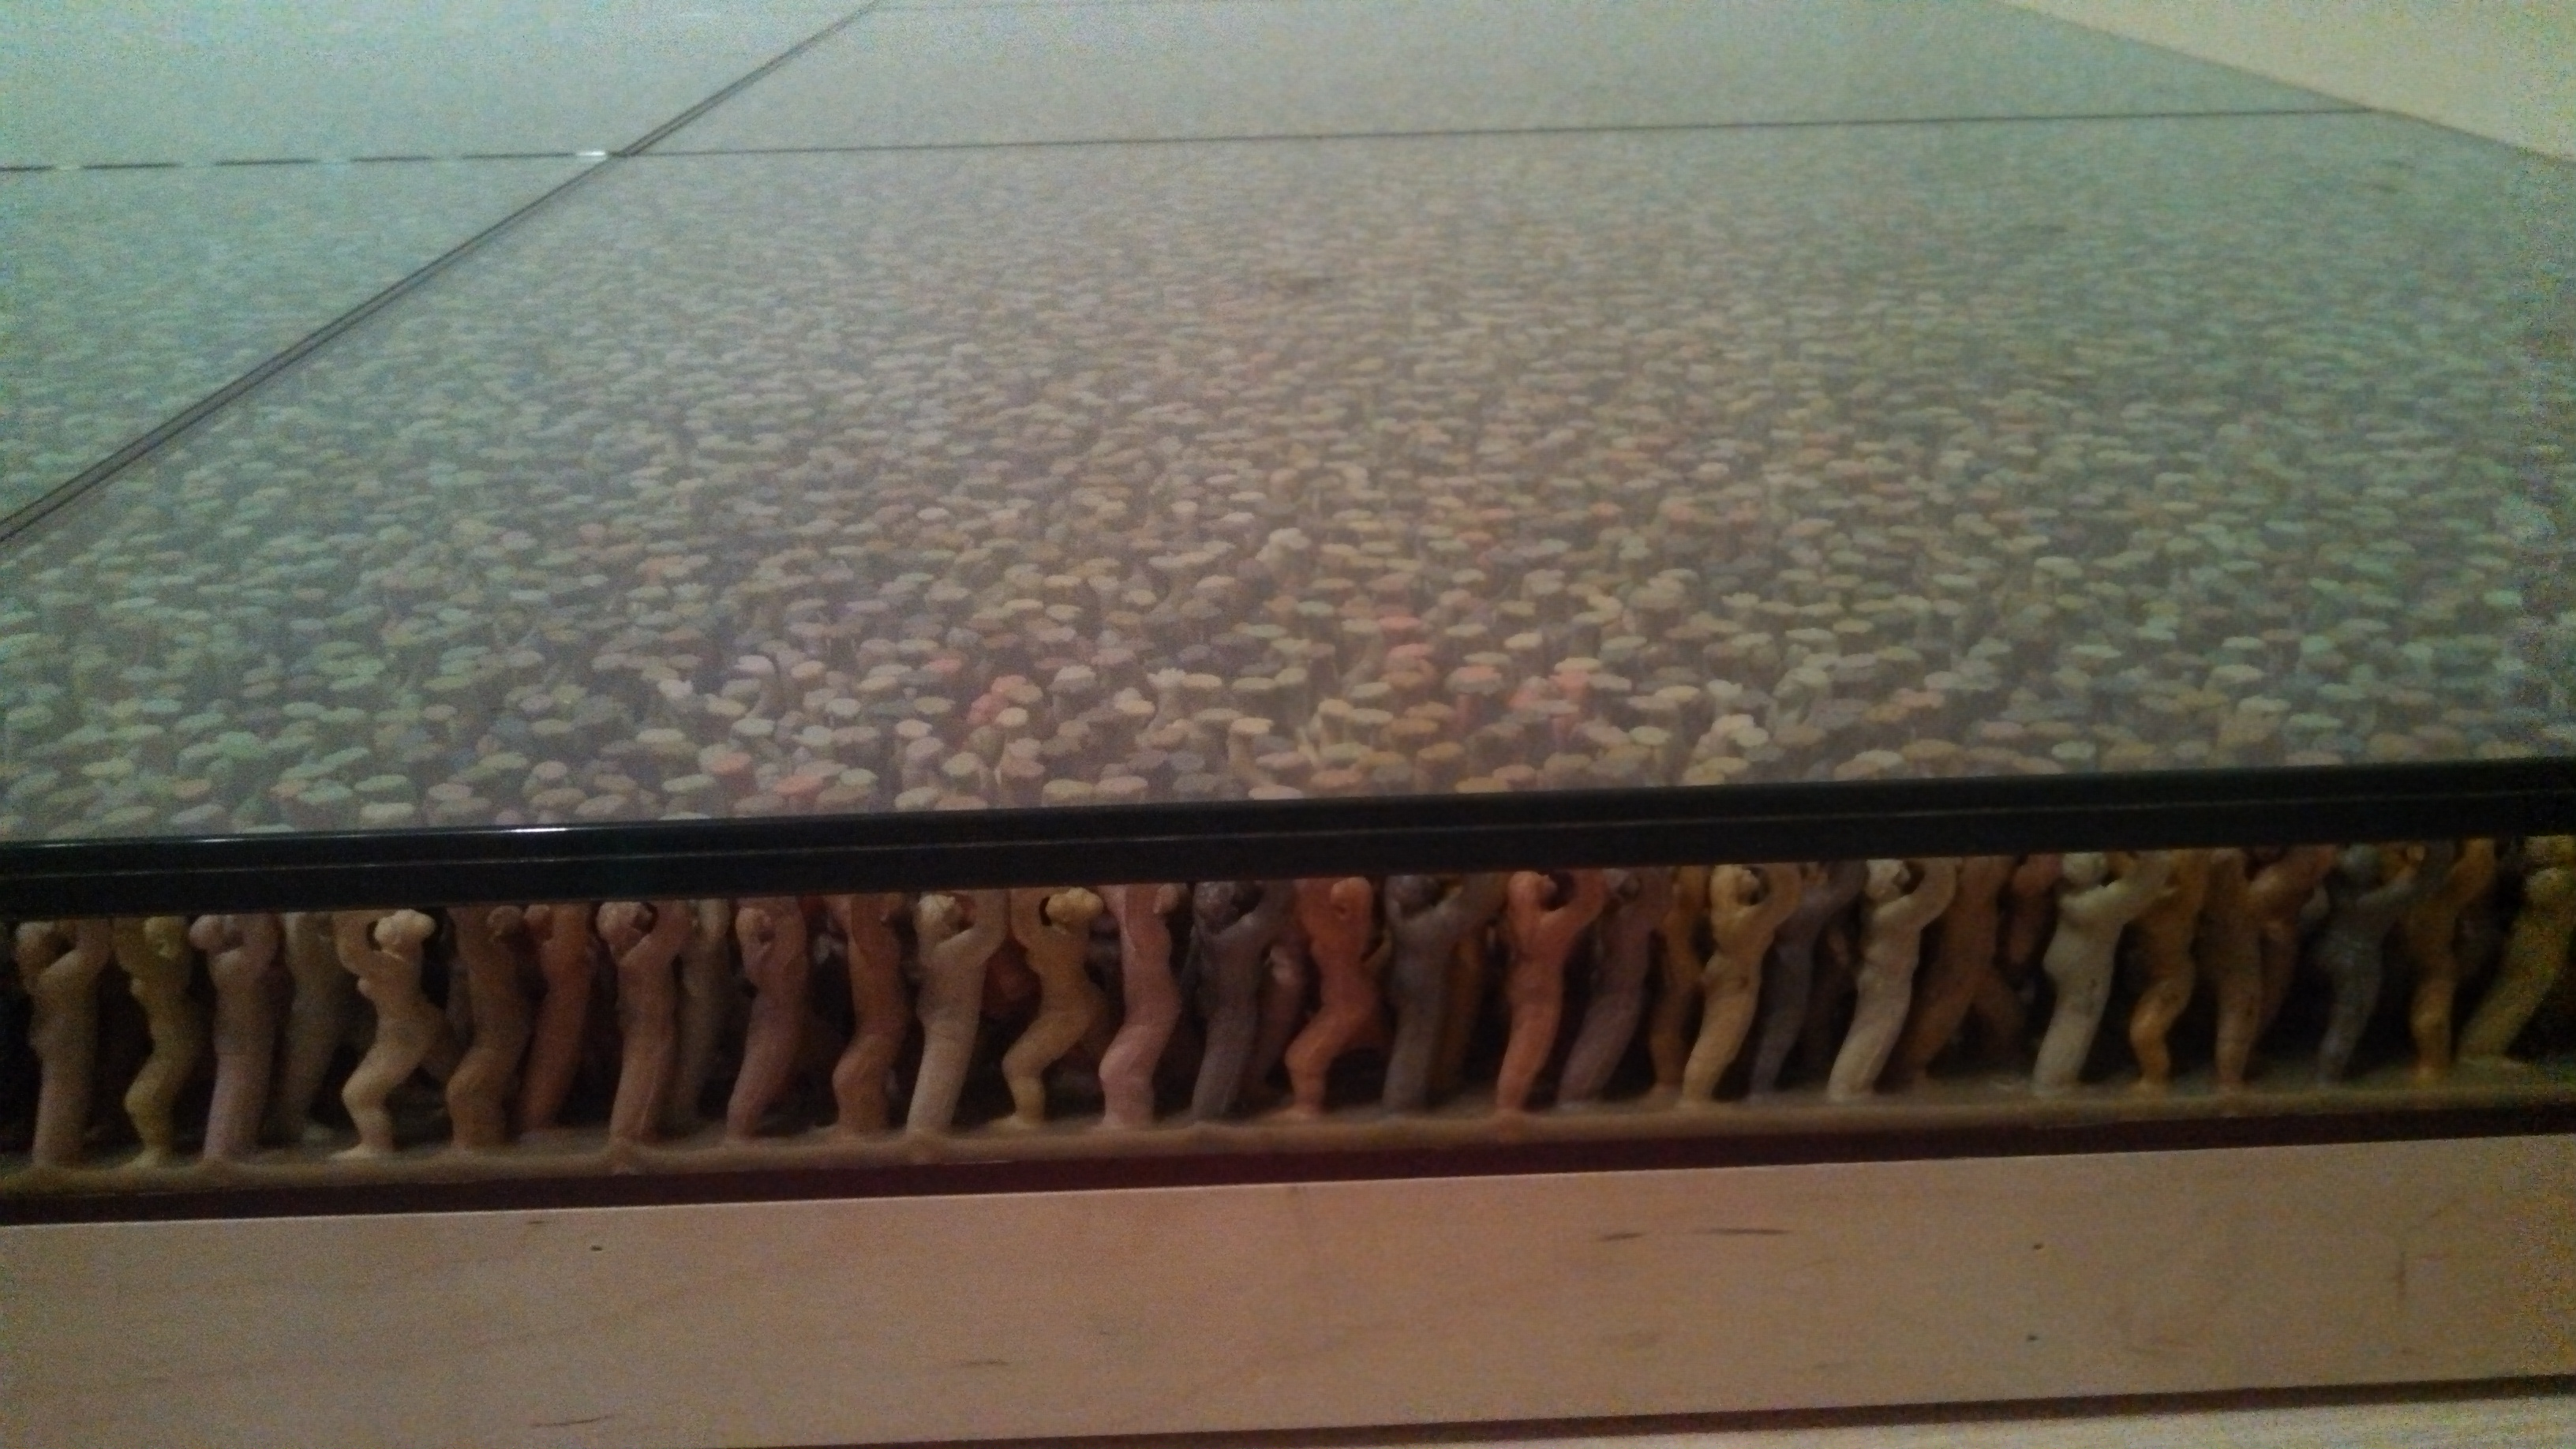 Why this is awesome: During my birthday month celebration, I took a trip to the Indianapolis Museum of Art to see ...